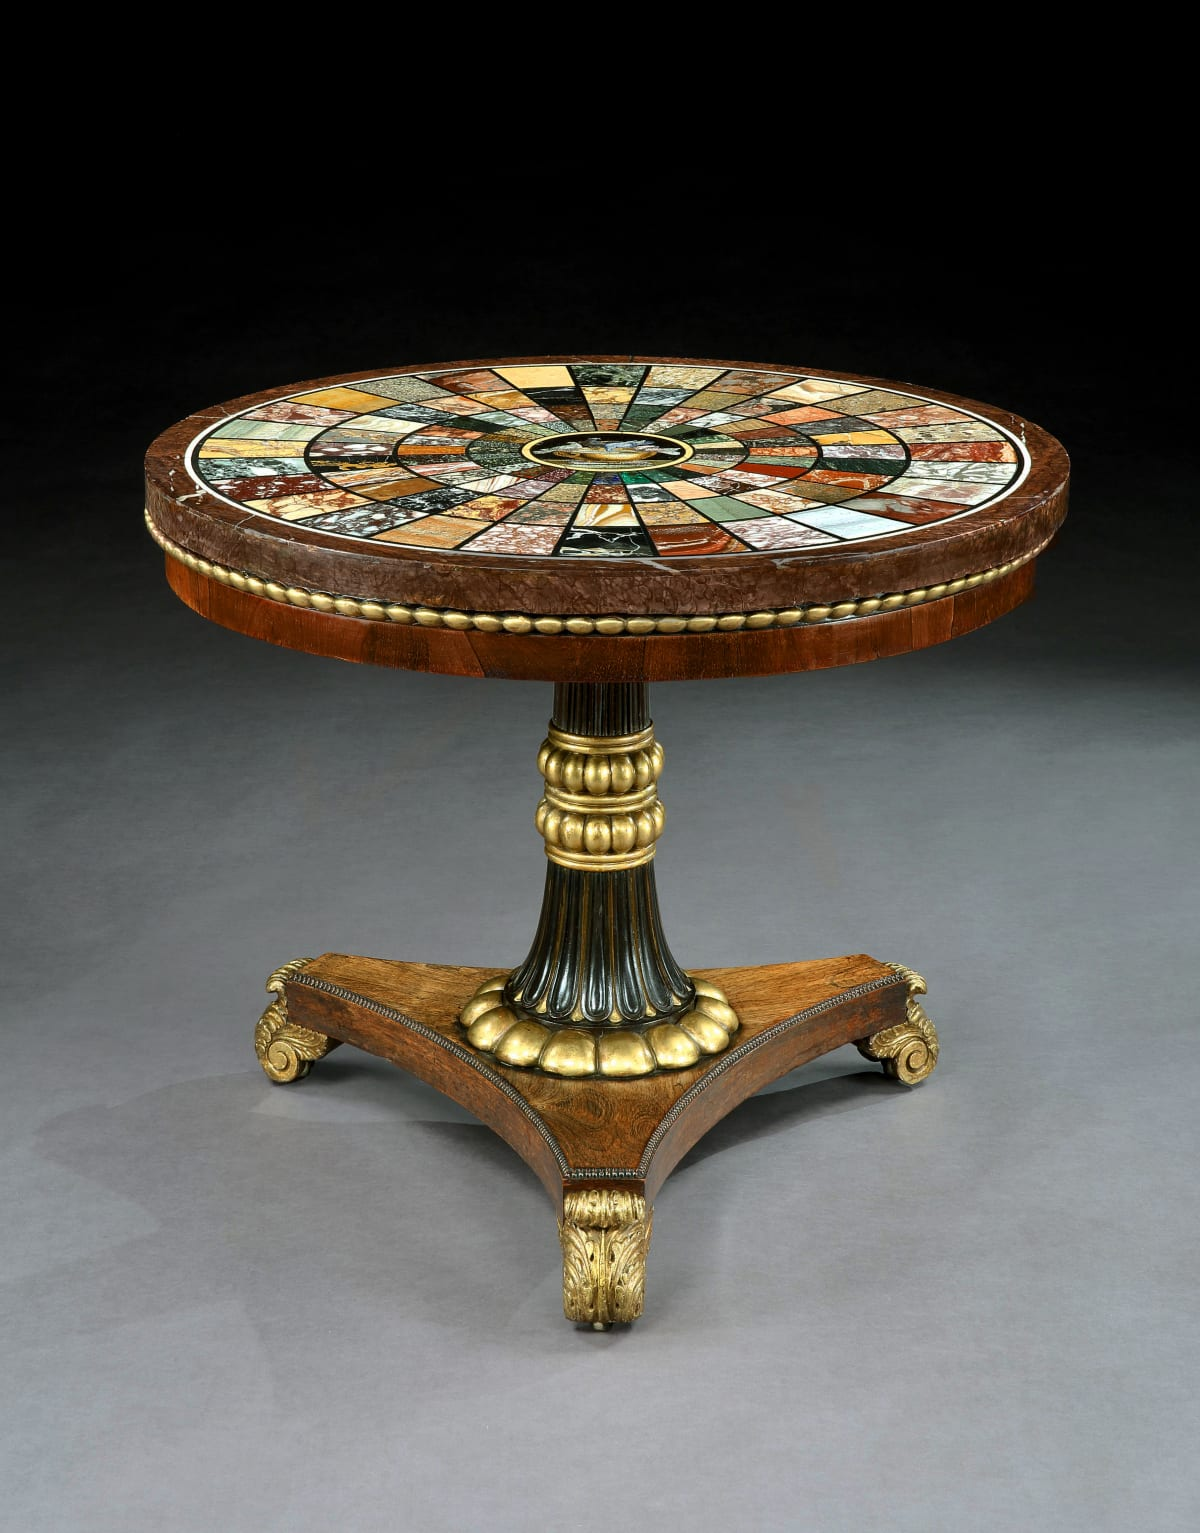 A REGENCY ROSEWOOD CARVED AND GILDED CENTRE TABLE WITH SPECIMAN MARBLE TOP, English, circa 1810